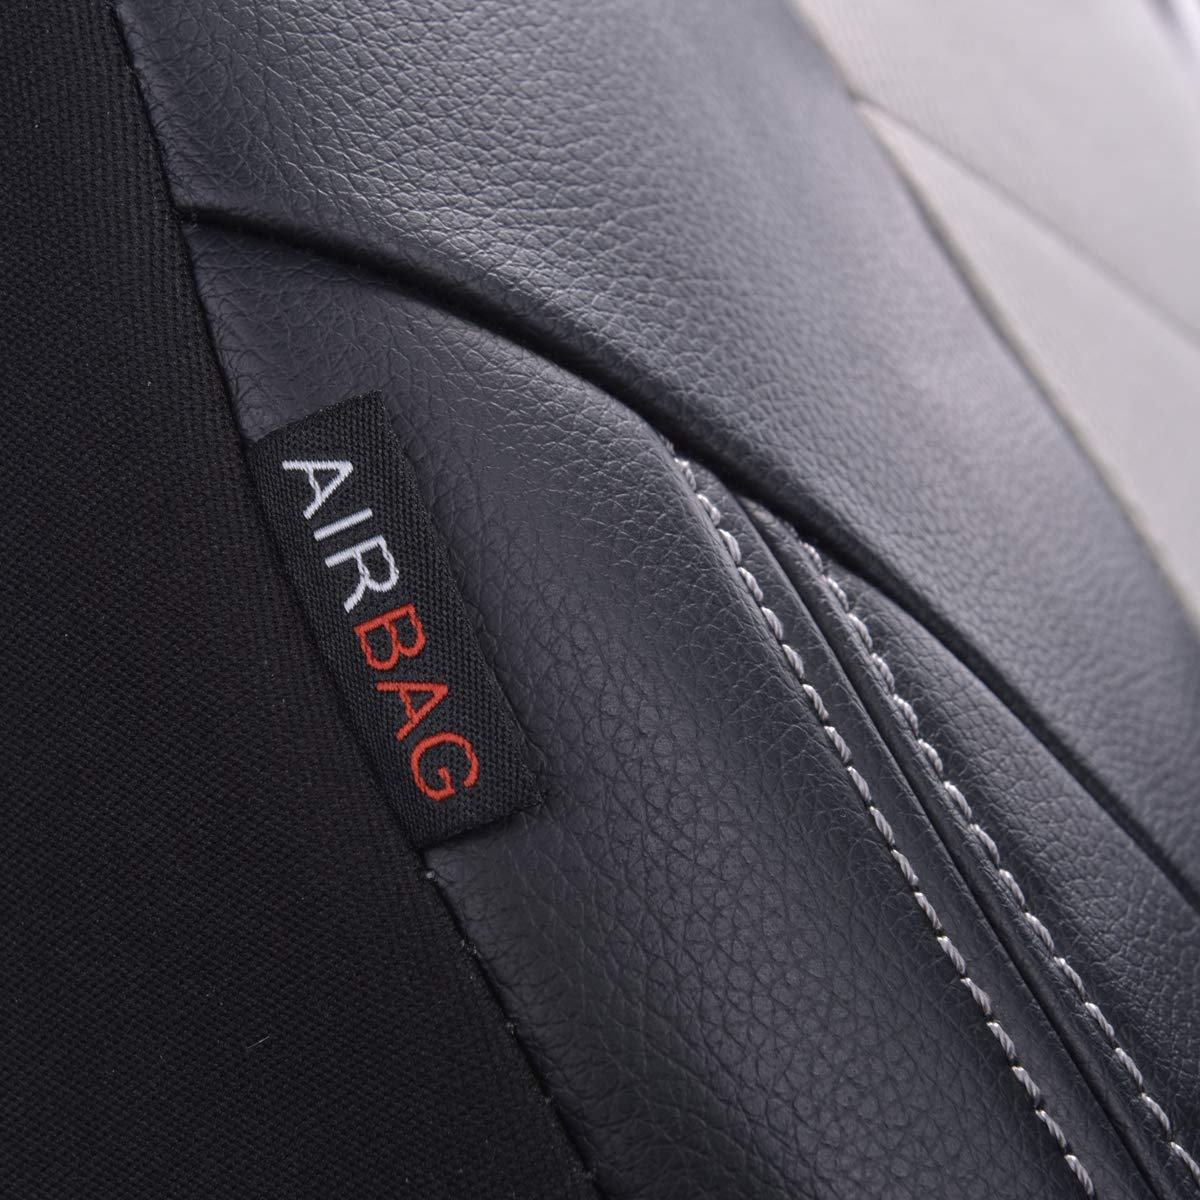 Airbag compatiable,Black with Black LJ Car Pass AIR FRESH Universal Seat Covers Set NEW ARRIVAL